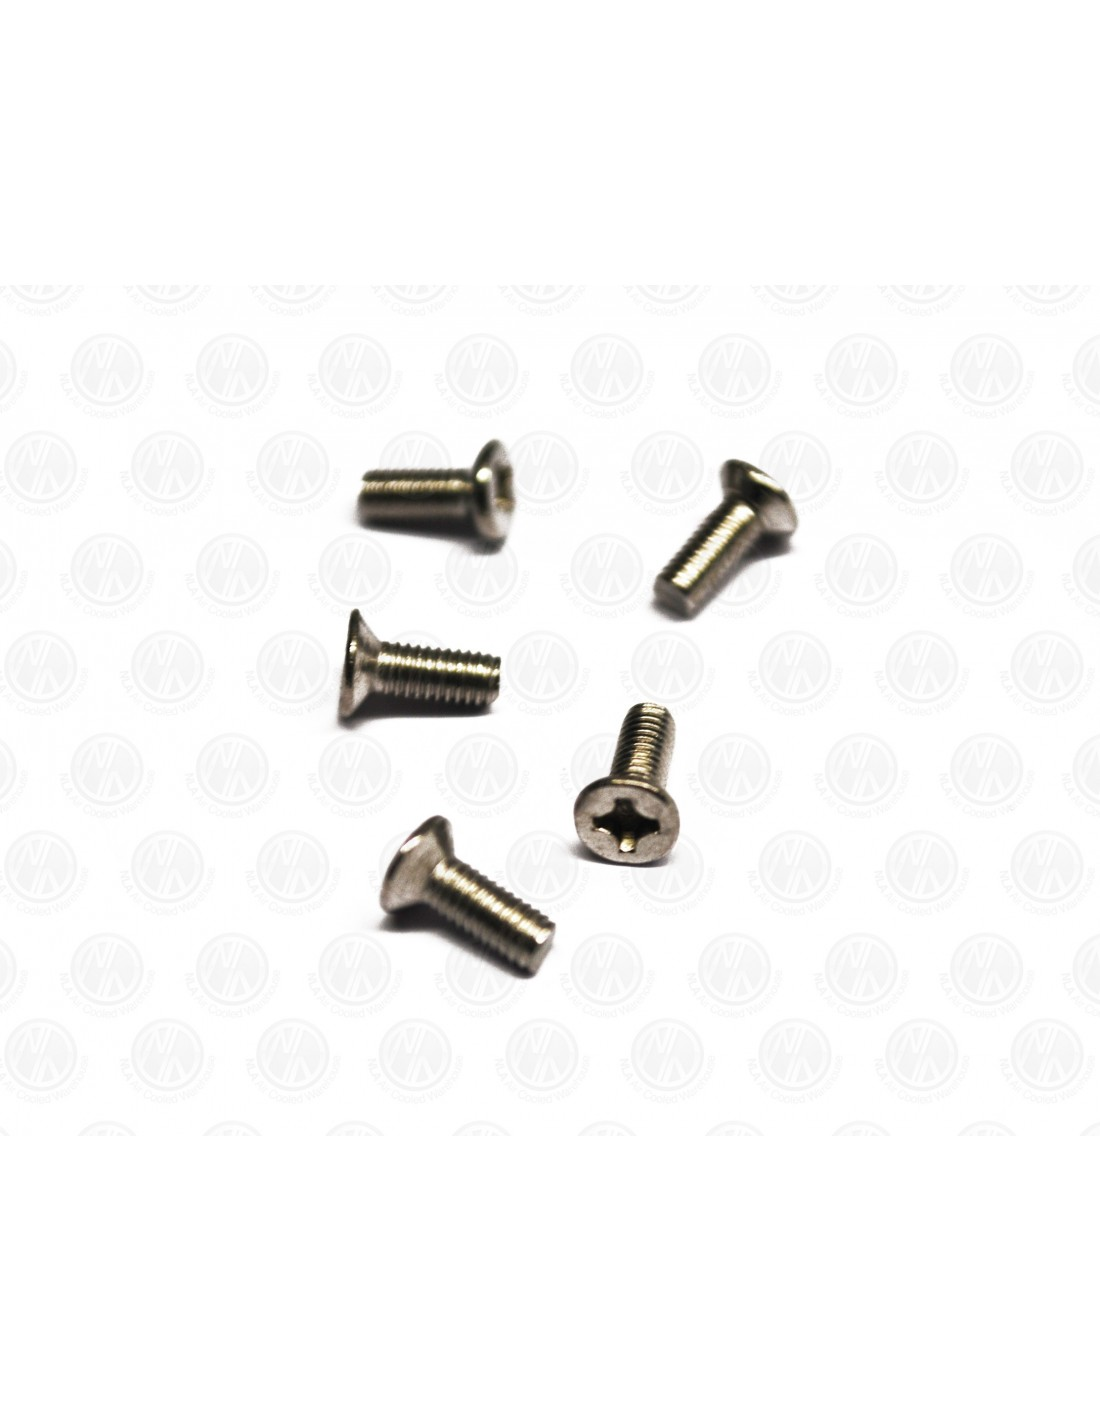 Countersunk Head s/s screws V Head S/S Bolts for VW split